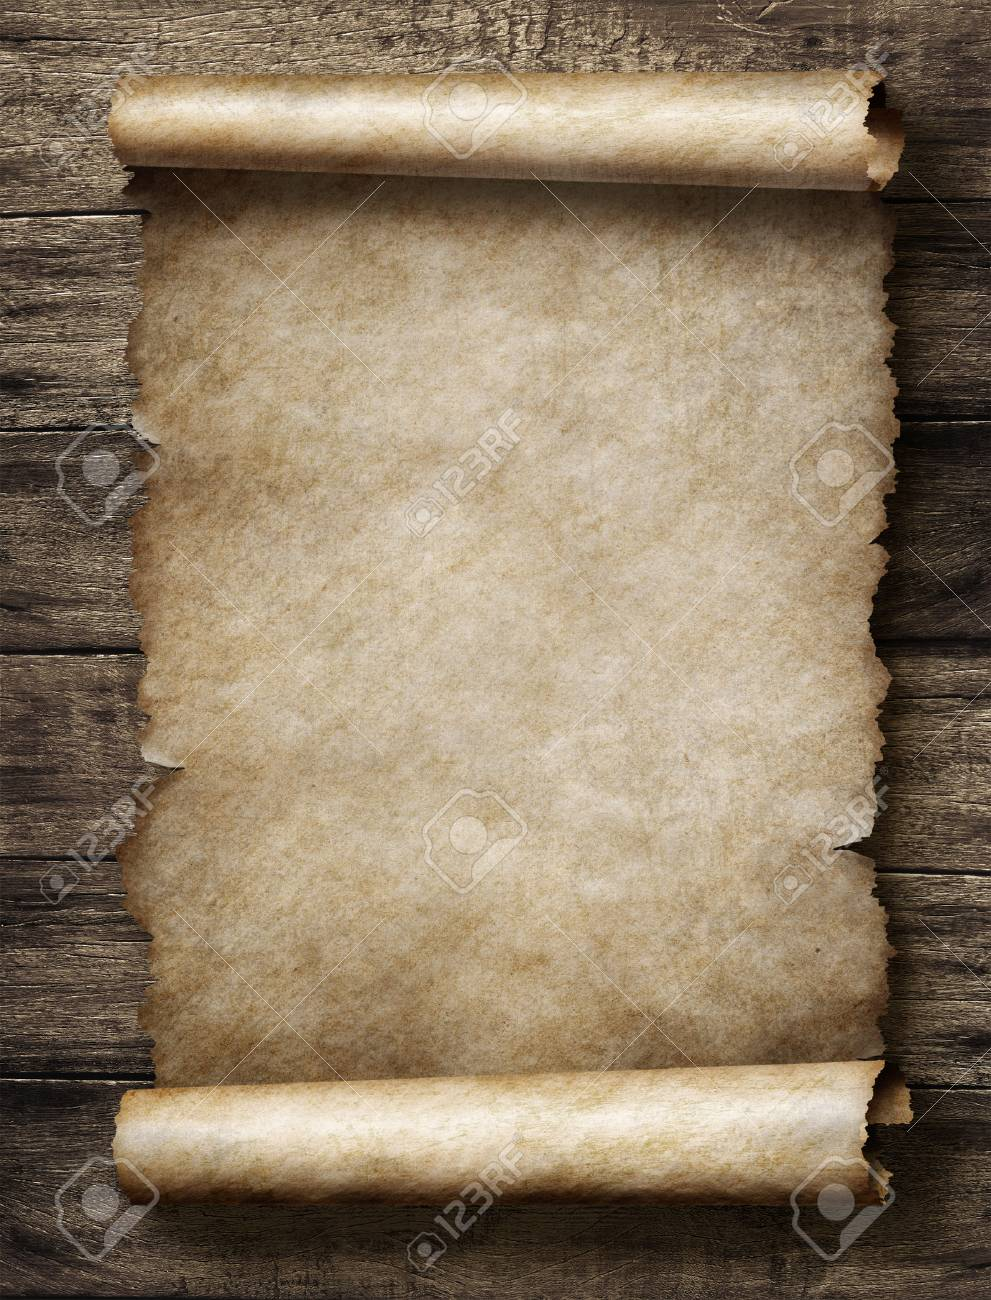 vintage parchment or scroll - 75784195